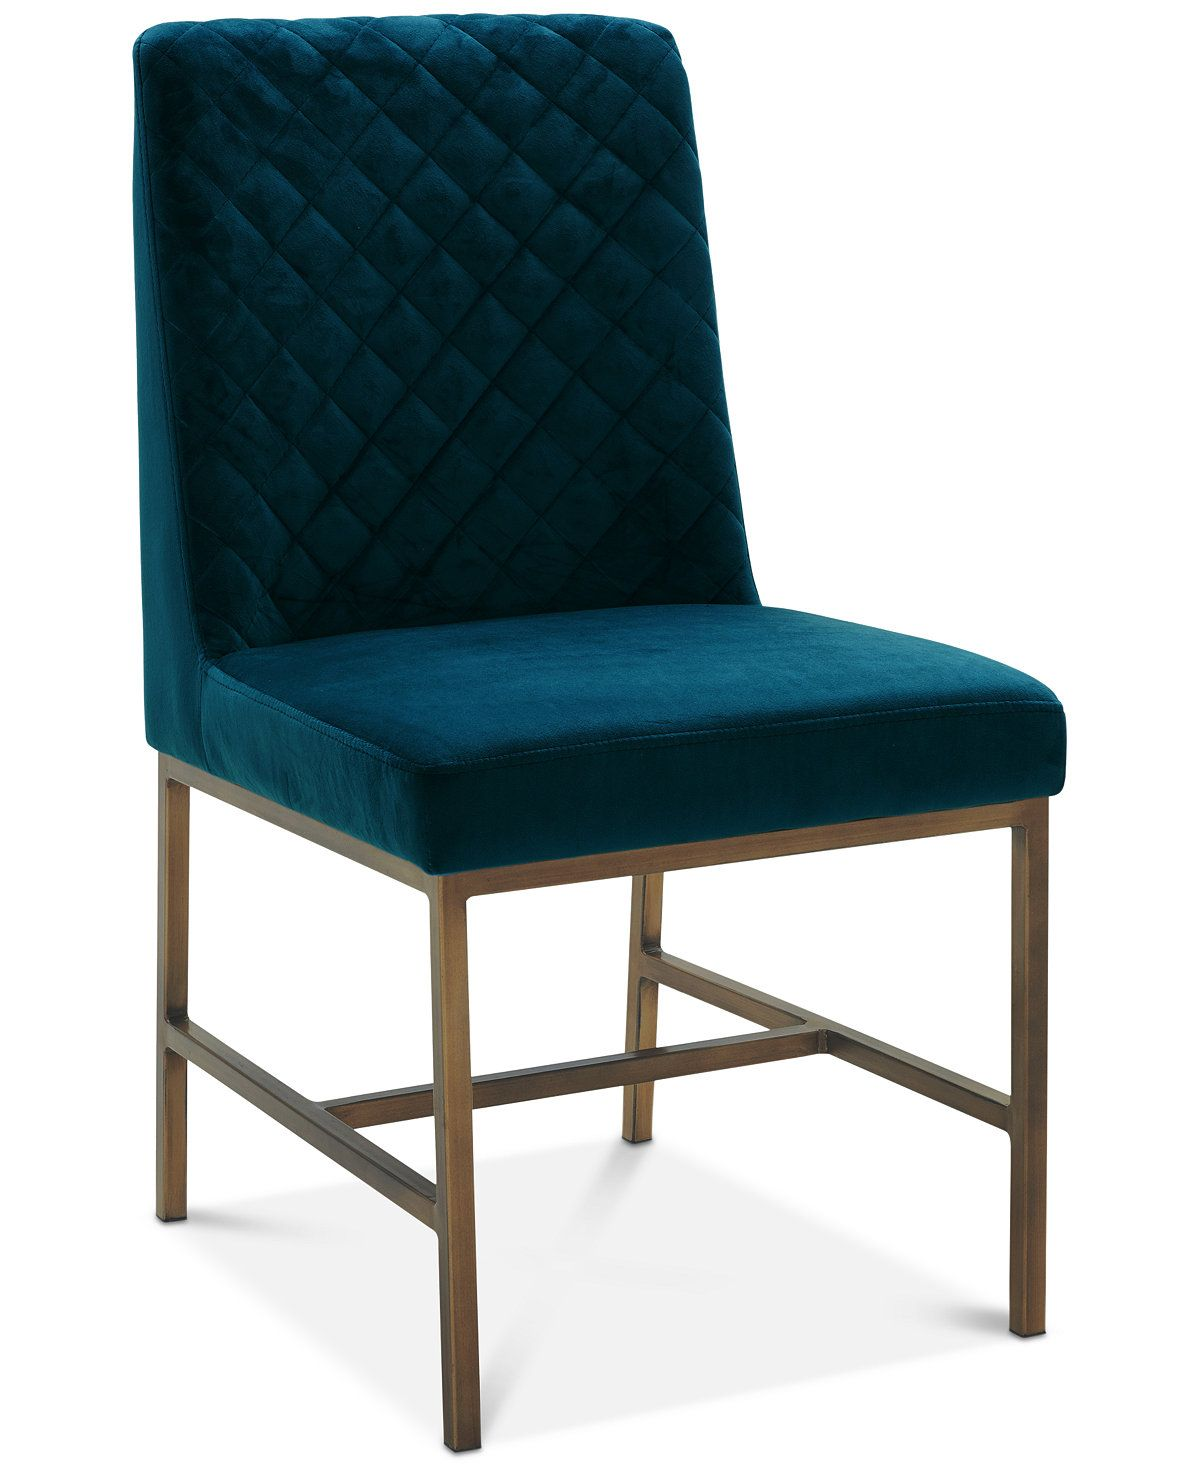 Cambridge Dining Side Chair Teal Room Chairs Benches Furniture Macy S